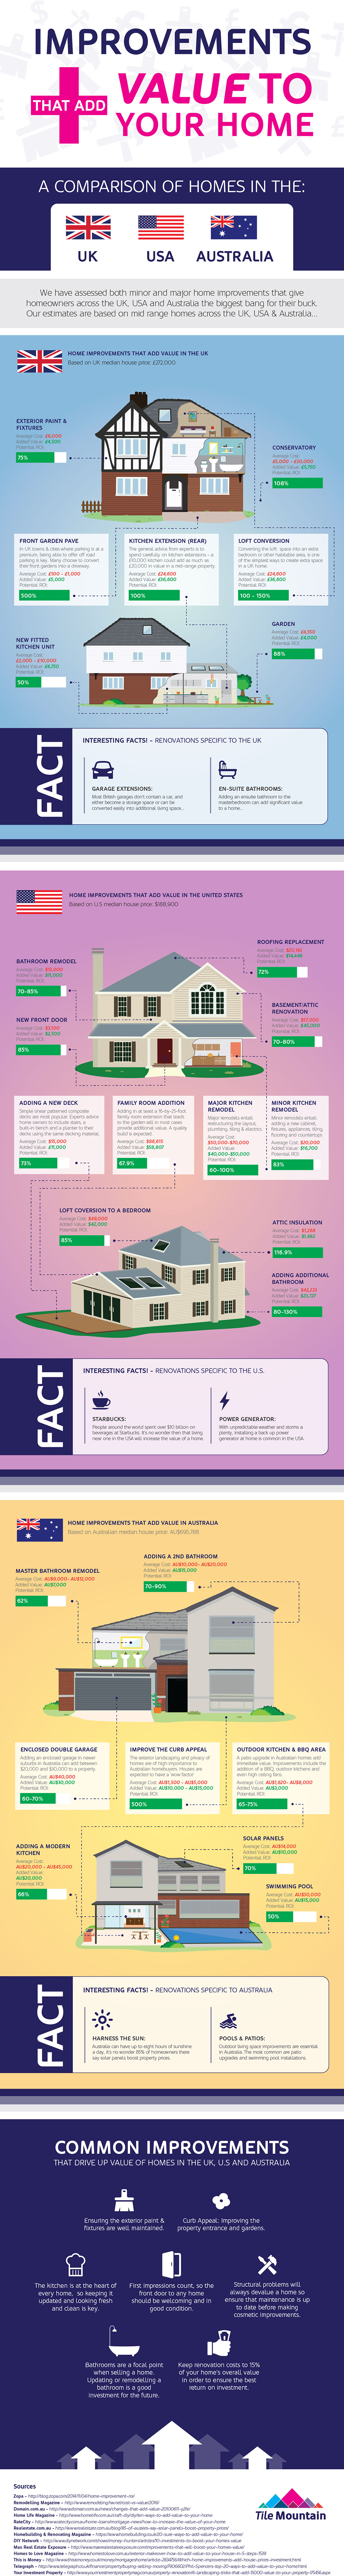 Home Improvements That Add Value To House Prices